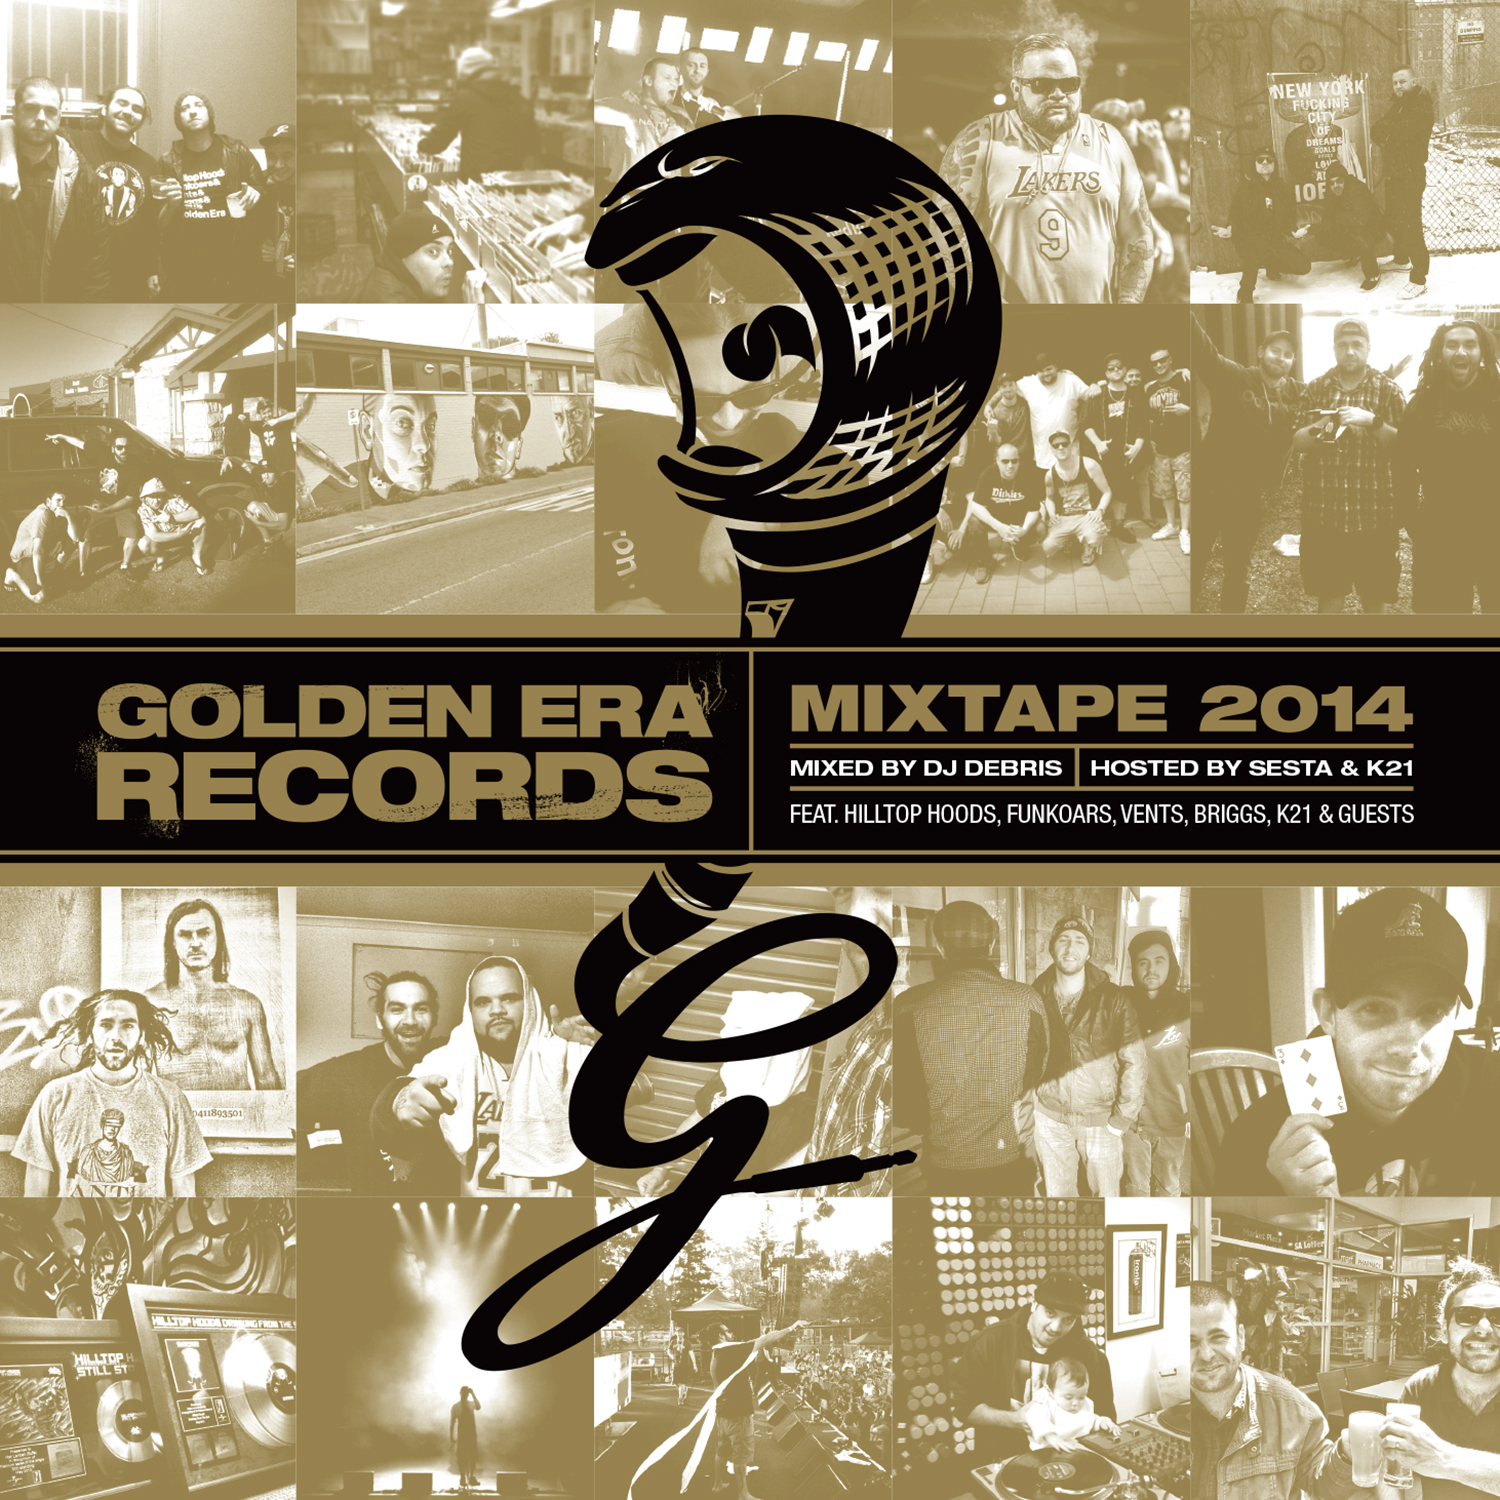 GOLDEN ERA MIXTAPE 2014